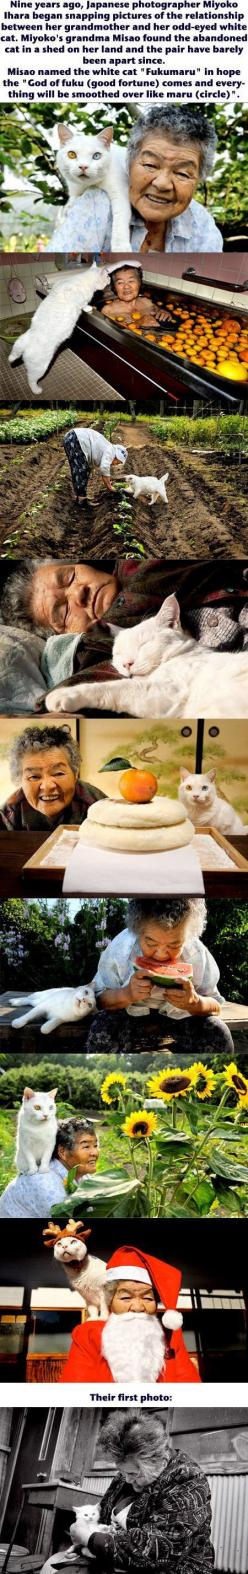 Love: Awww Best Friends, Cat Relationships, Geeky Photographer, Pet, White Cats, Grandmother, Cat Lady, Animal, Cat Cuteness